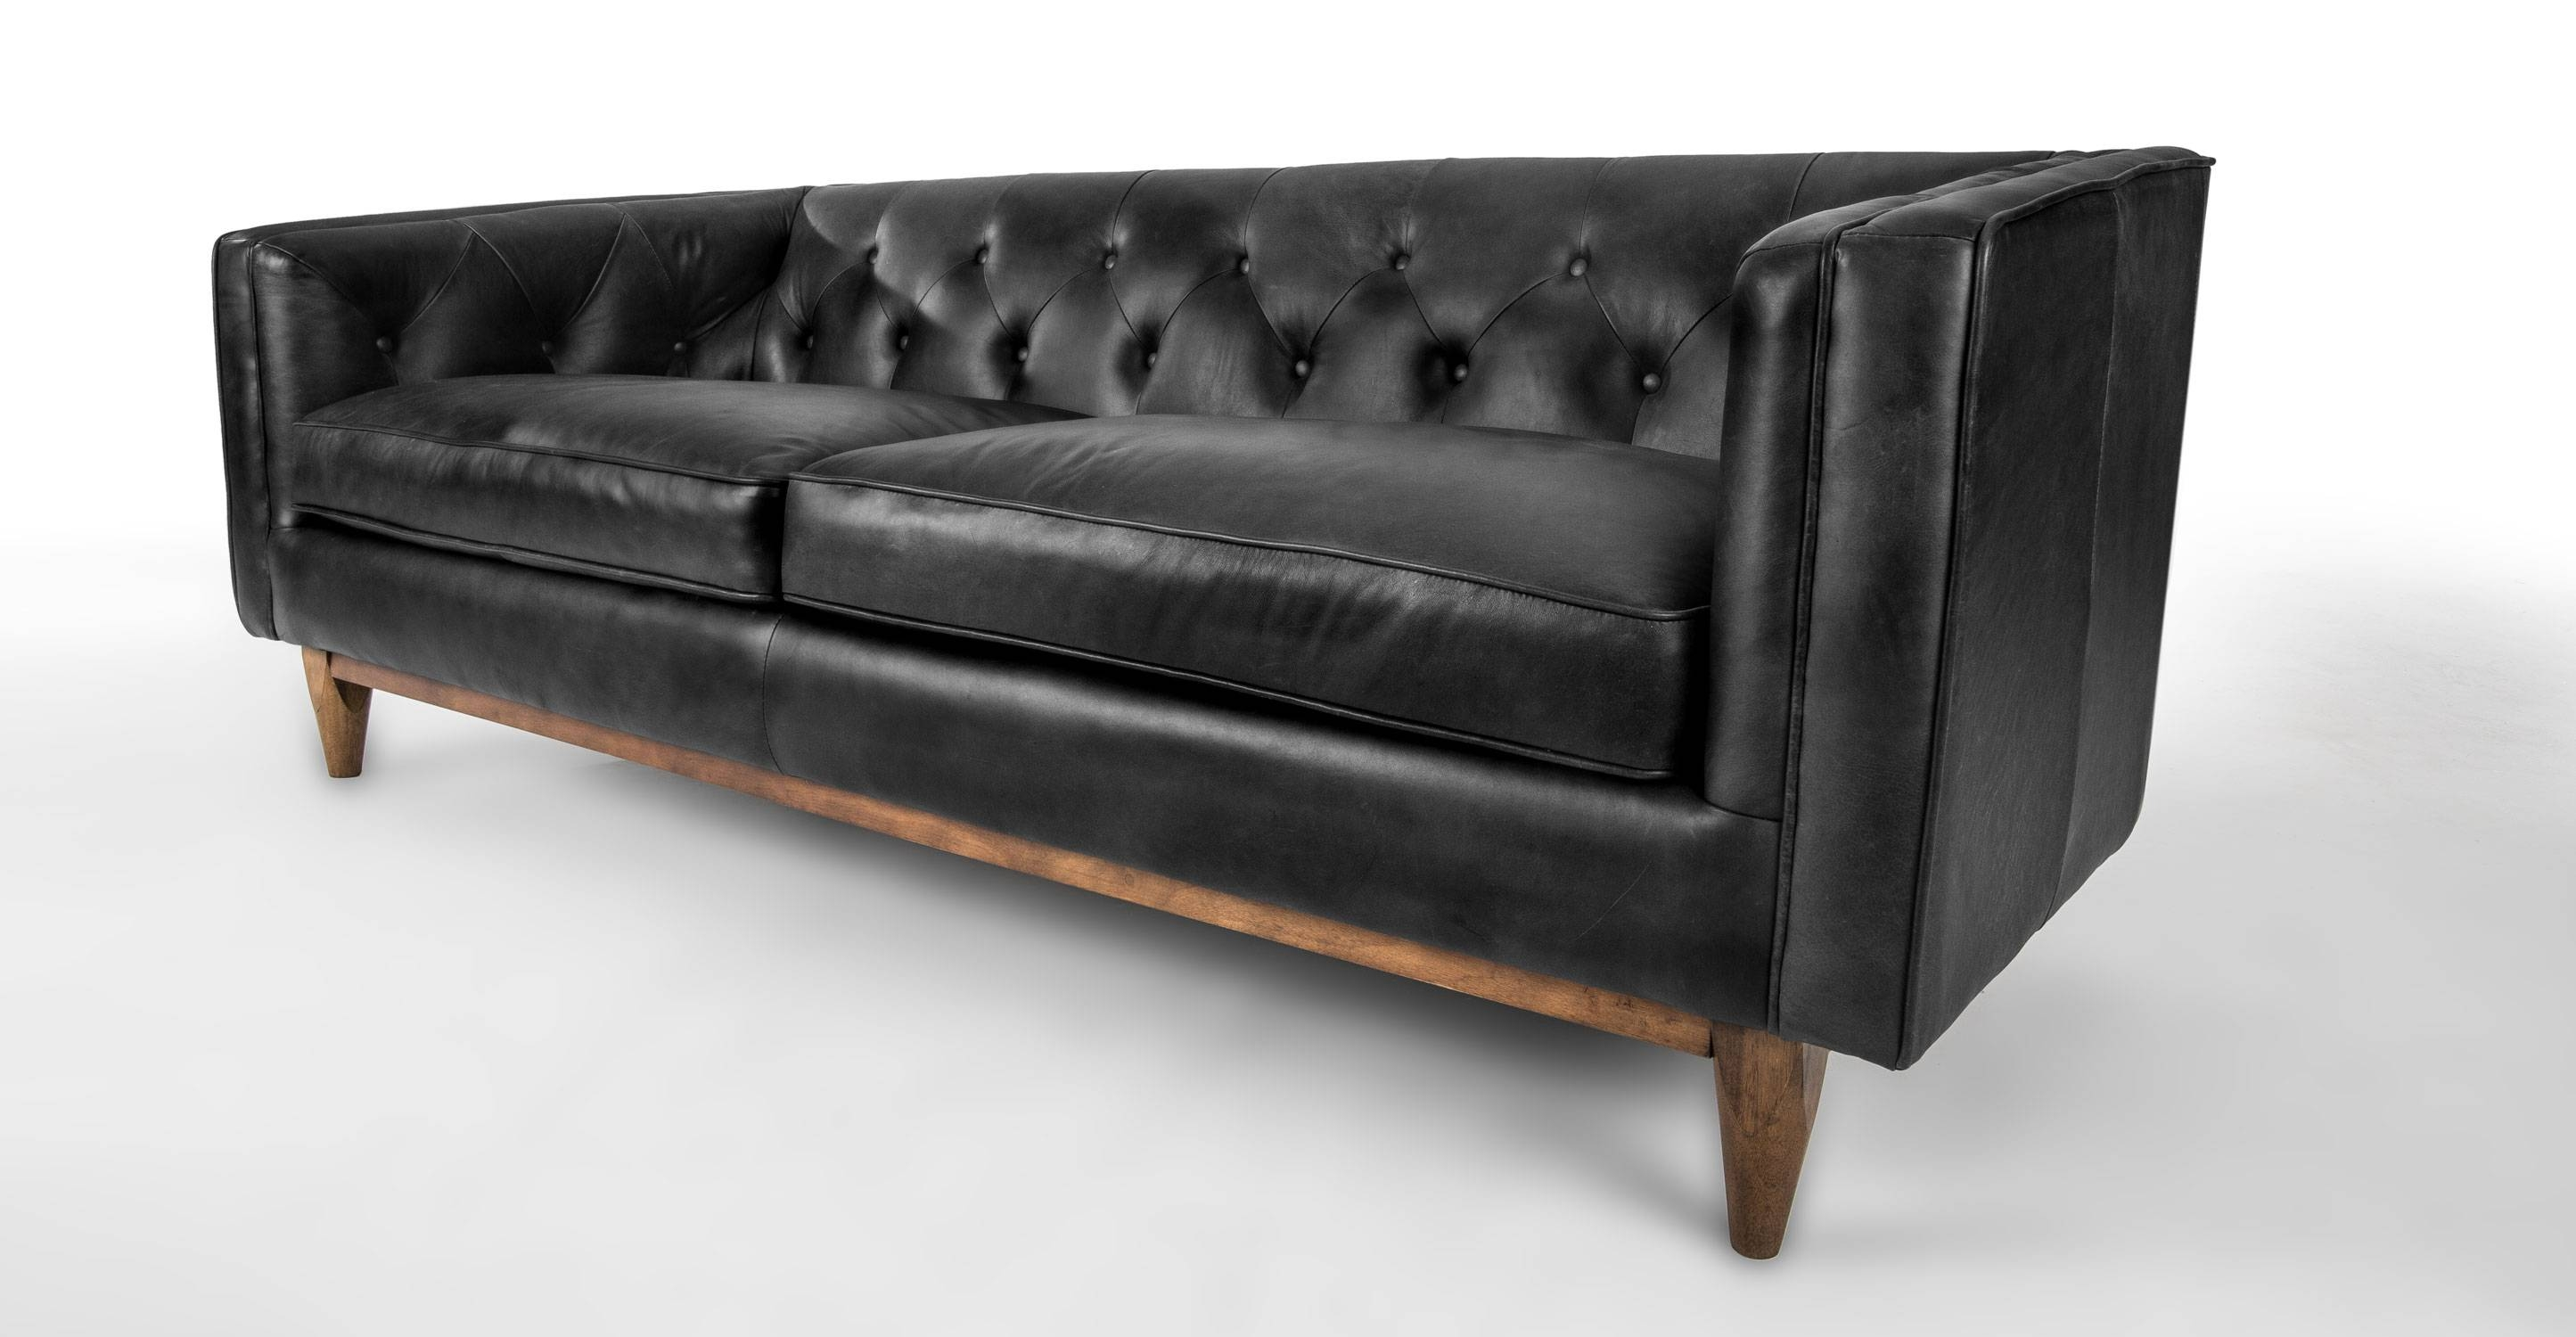 Sofas Center : Caramel Leather Mid Century Sofa Jcp Beigern inside Vintage Leather Sectional Sofas (Image 23 of 30)